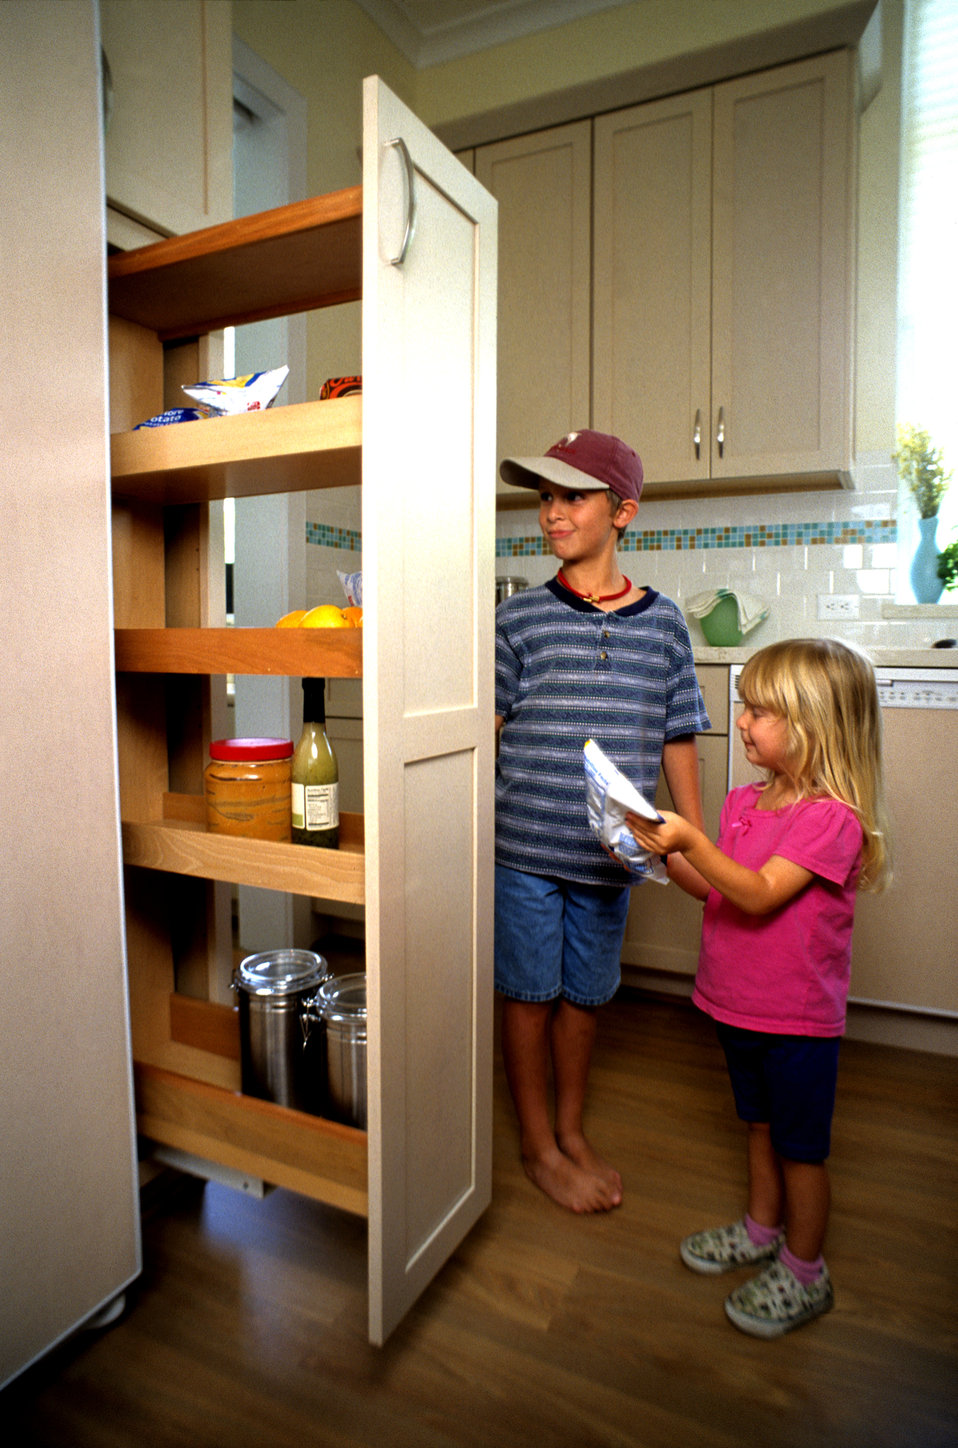 This sister and brother, were photographed in this 2000 image in order to illustrate how the installation of a 'pull-out' pantry inside this